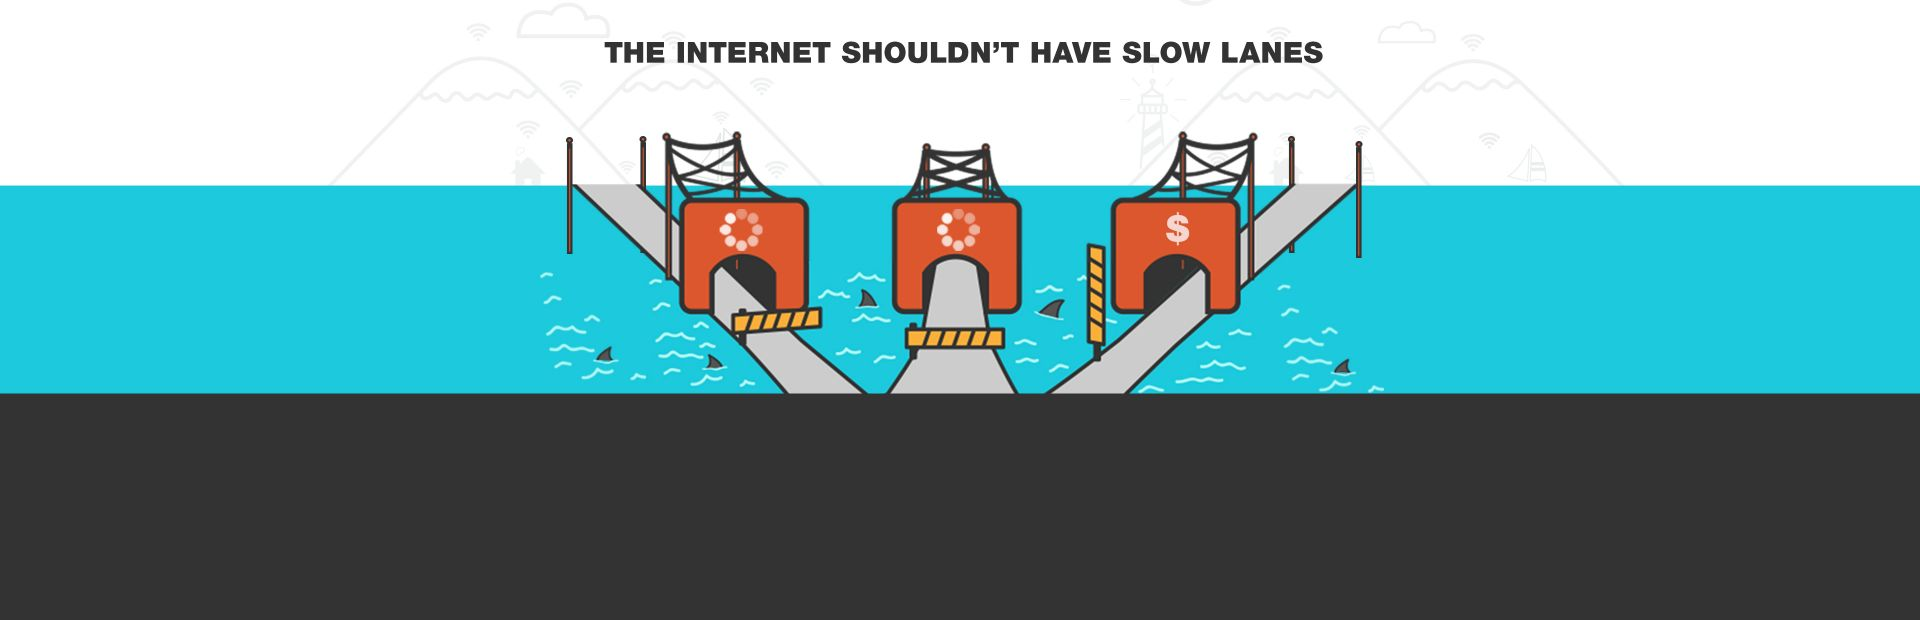 The Internet shouldn't have slow lanes [image of bridges two of which have the 'loading' icon and are blocked and one with the dollar sign is wide open]